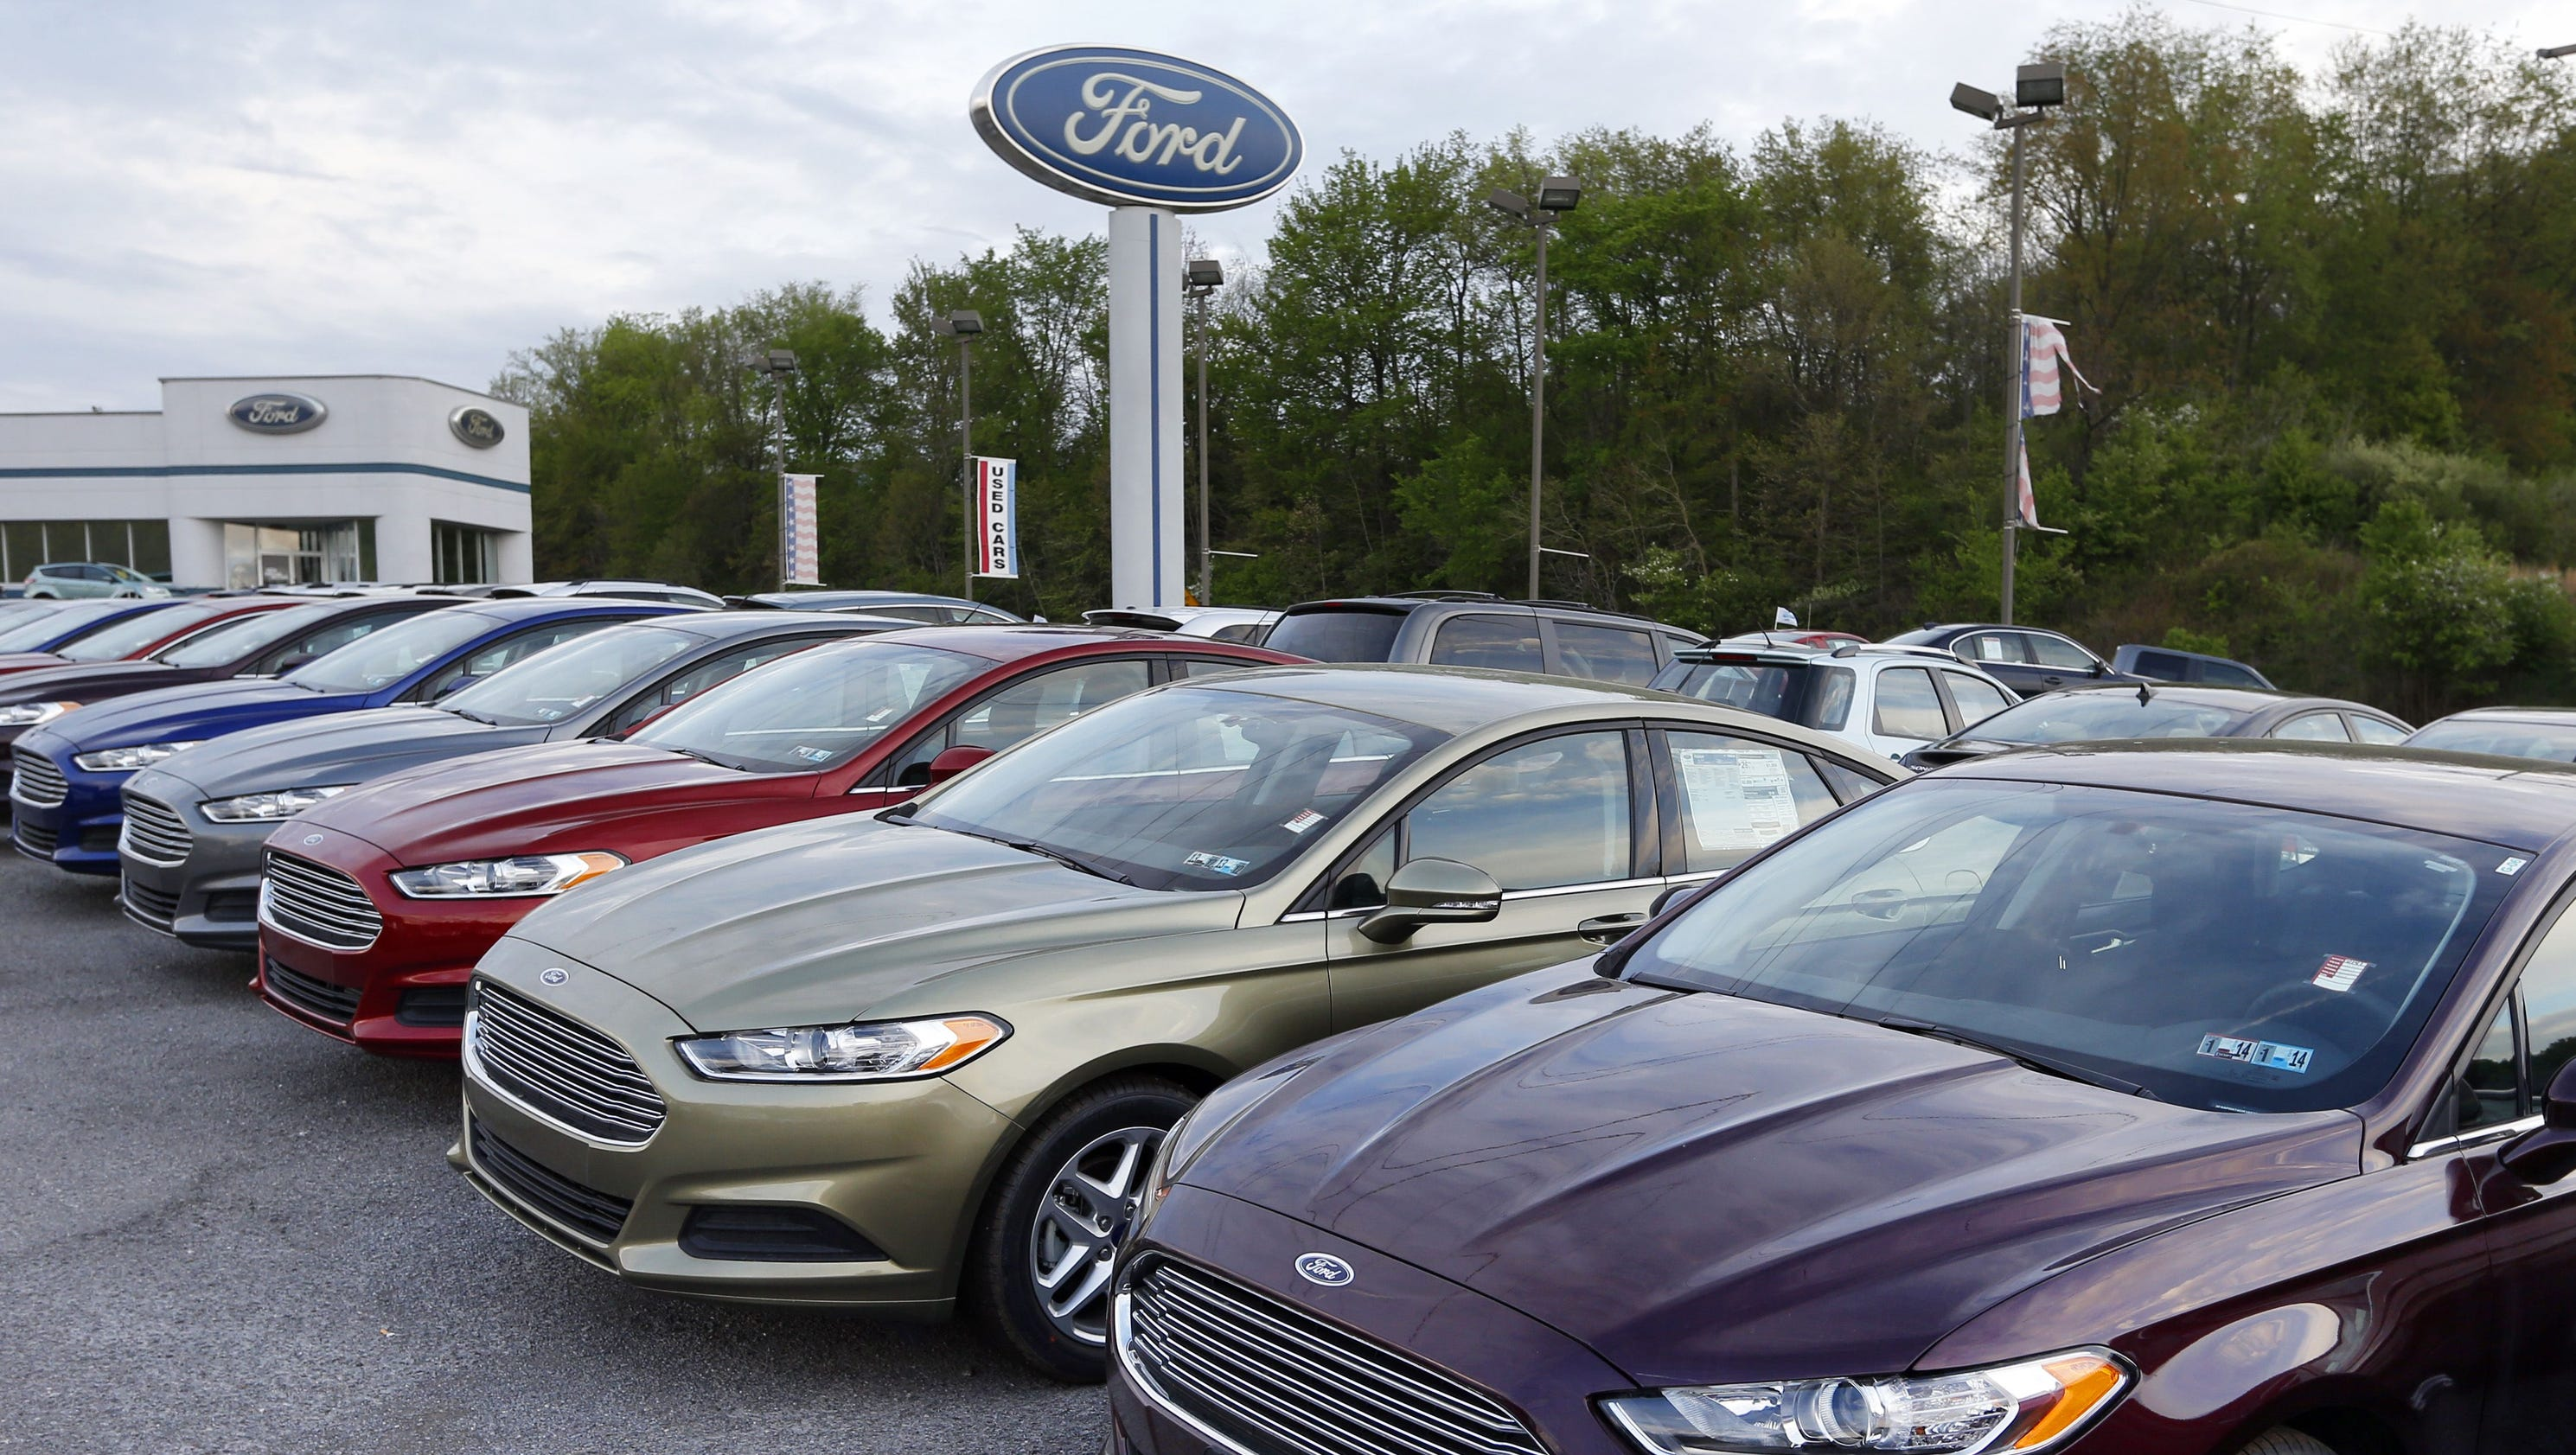 Ford gm fiat chrysler sales underwhelming as auto industry cools off Ford motor auto sales